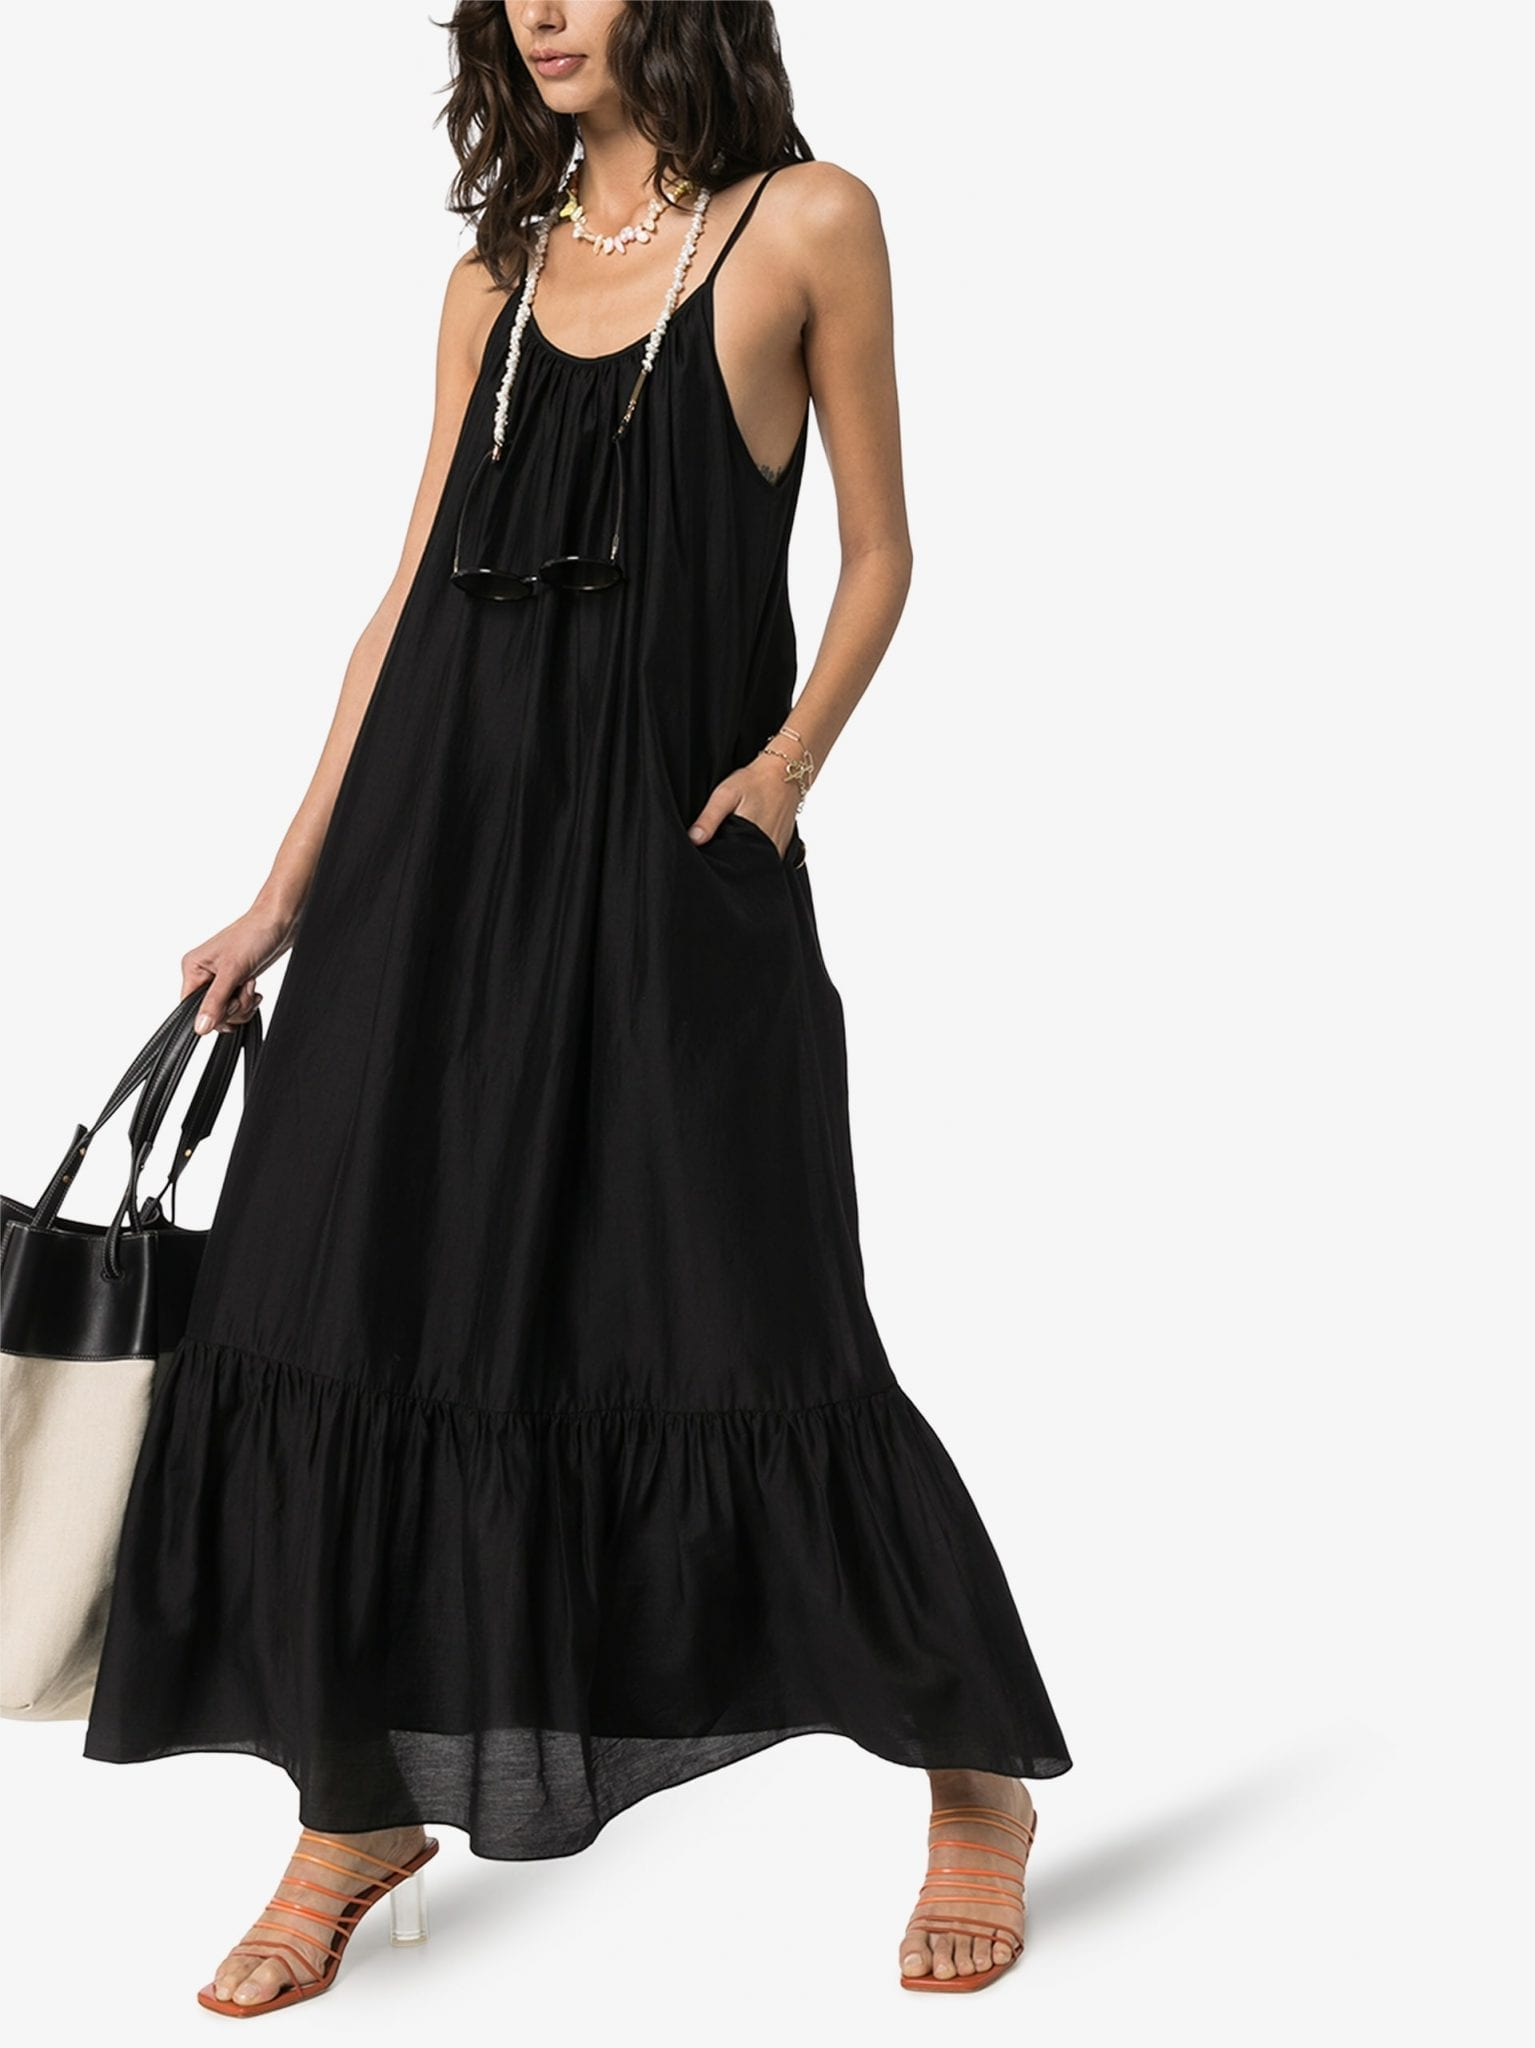 MISSING YOU ALREADY Gathered Maxi Dress